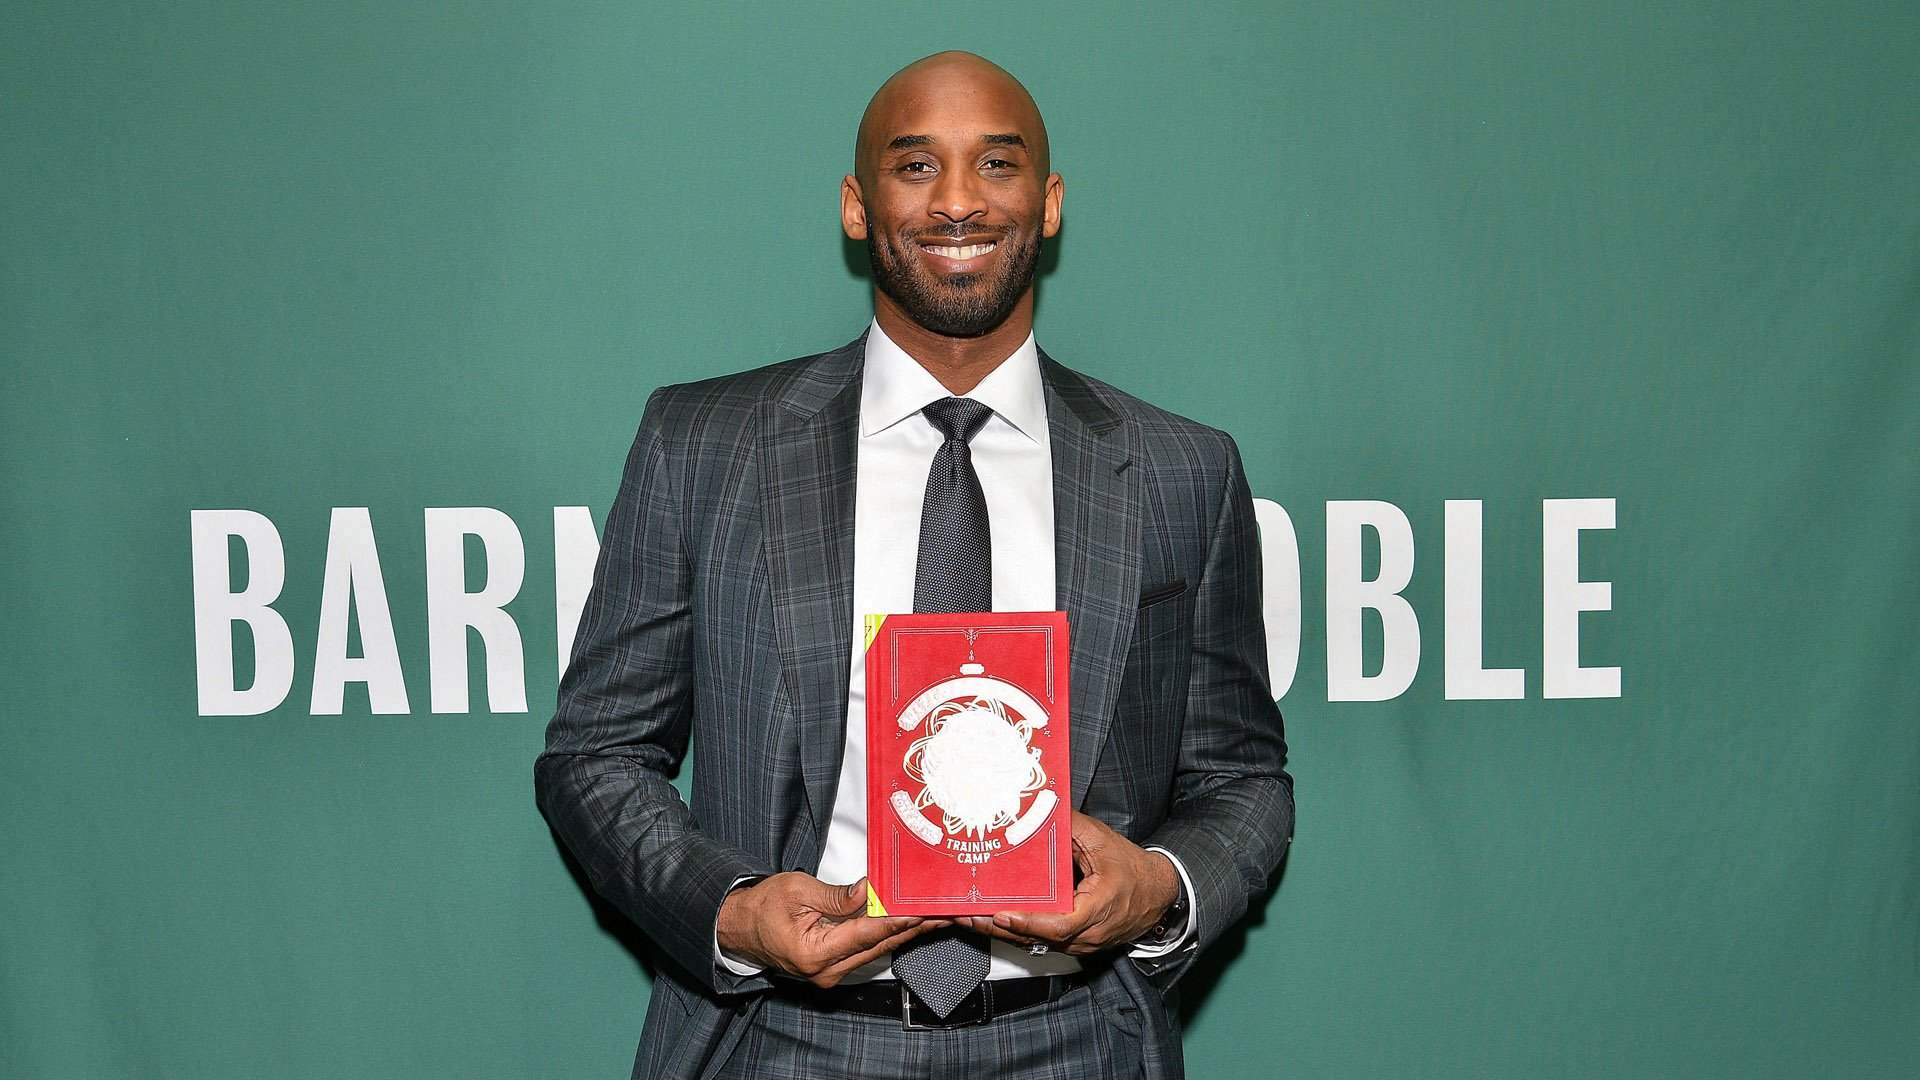 """Kobe Bryant promotes his book """"Training Camp (The Wizenard Series #1)"""" at Barnes & Noble Union Square on March 20, 2019, in New York City. (Credit: Dia Dipasupil/Getty Images for BN)"""